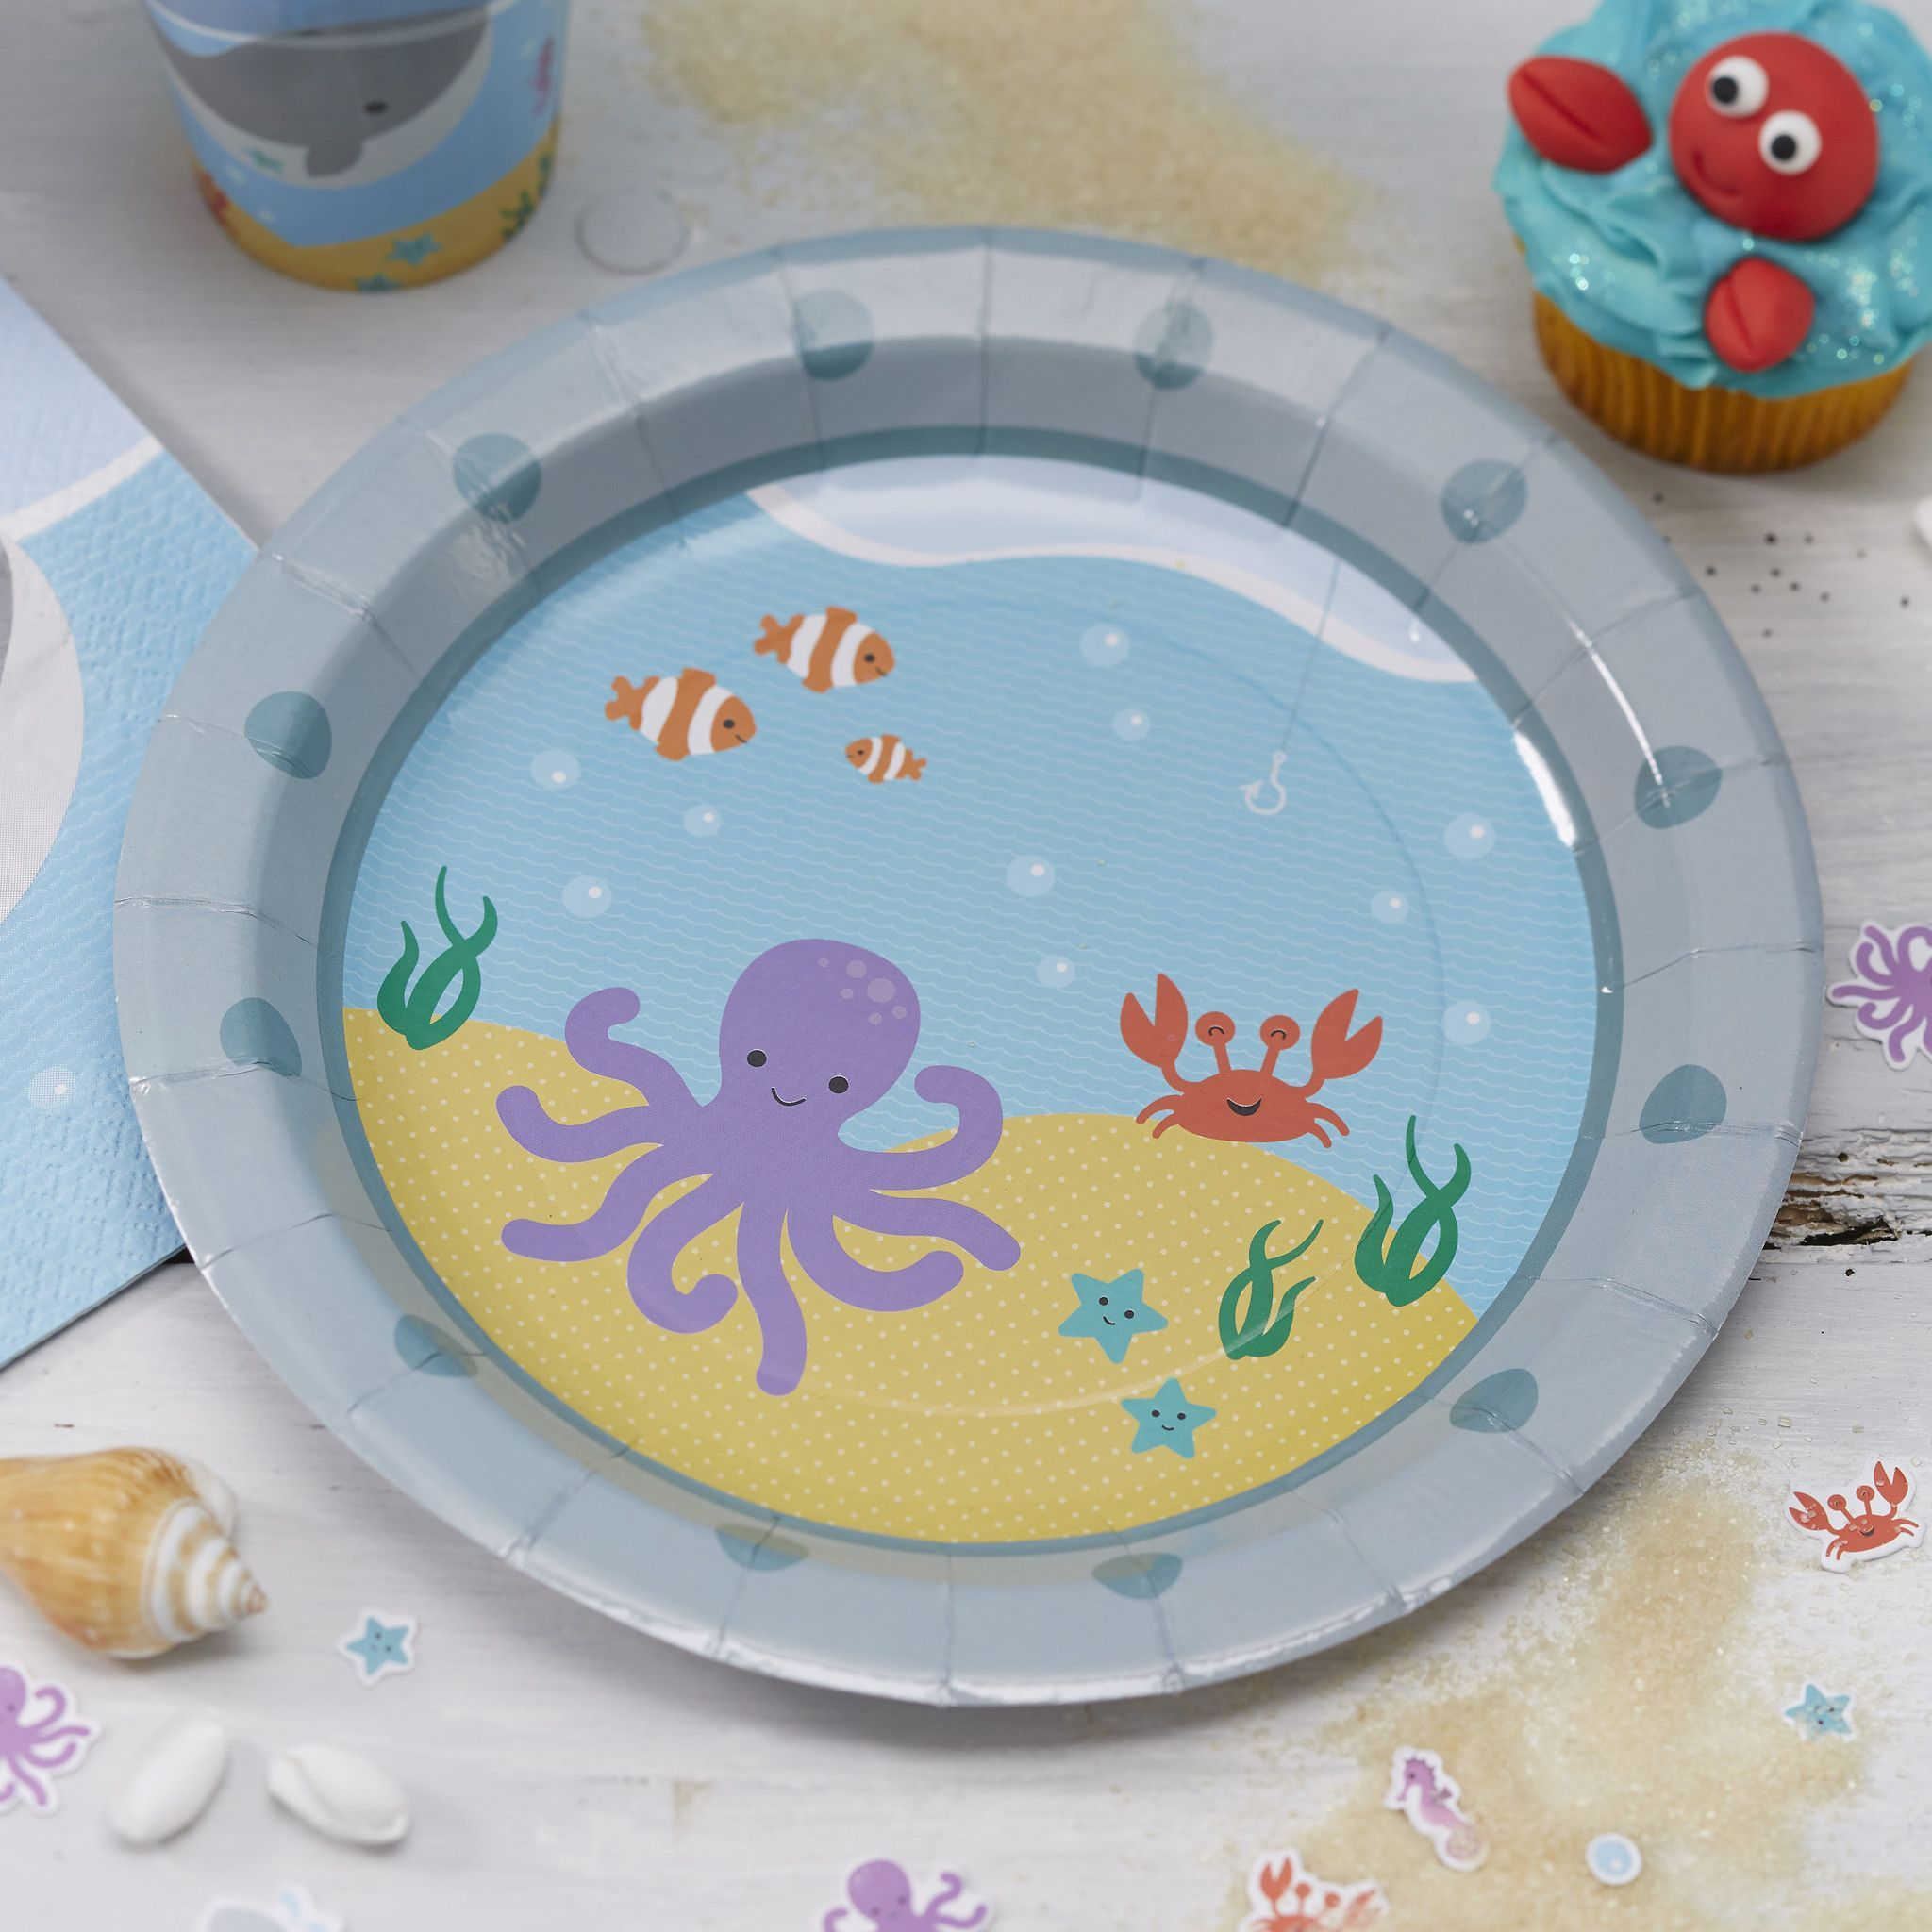 Cute Under the Sea themed paper plates perfect for a childrens party or birthday celebration! & Under The Sea - 8 Paper Plates | Childrens parties Birthday ...